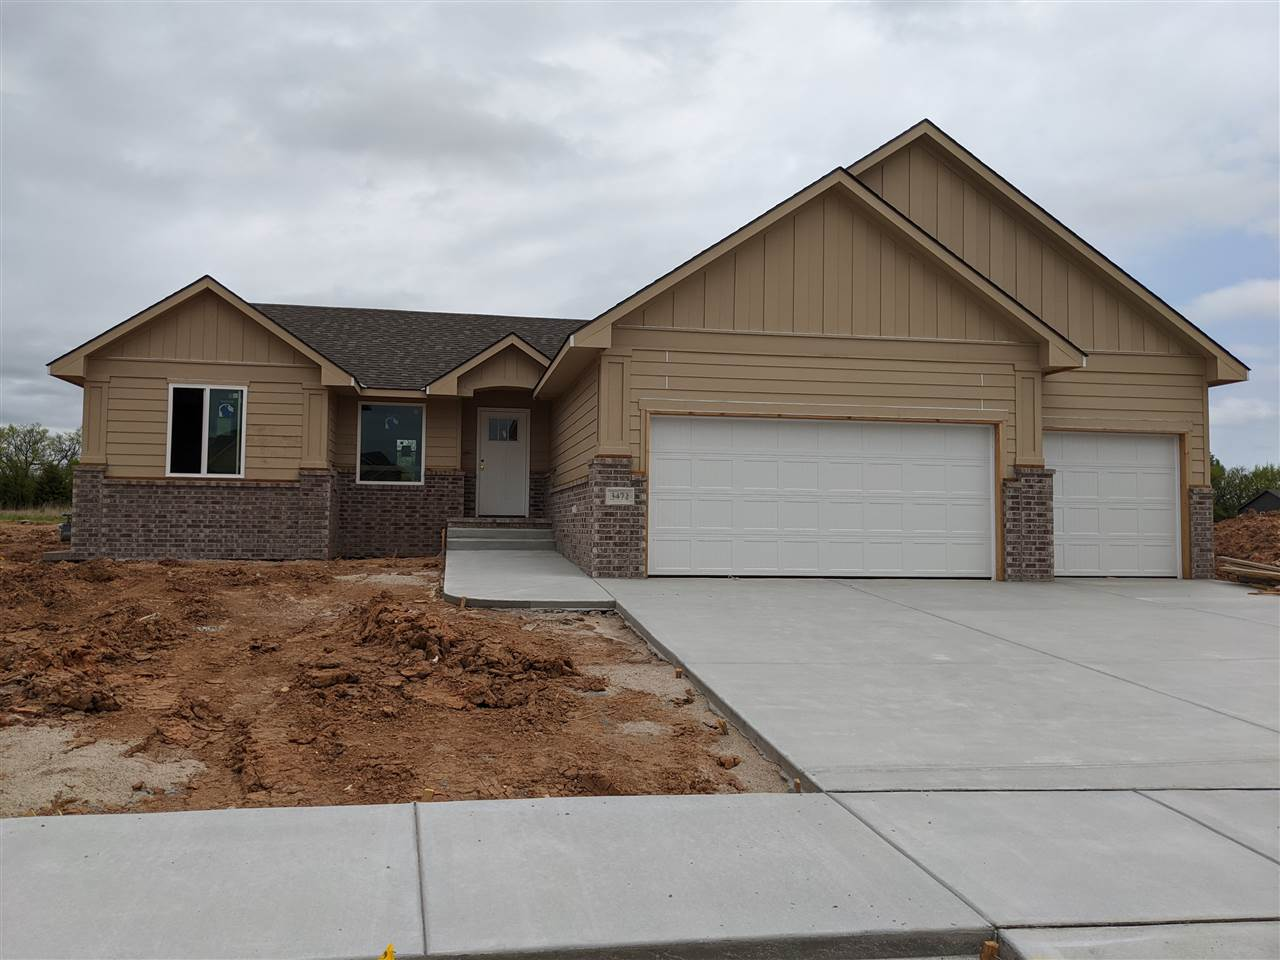 Comfort Homes Nick Jr Plan with 5 Bedrooms, 3 Bathrooms, large finished family room, 3- car garage,